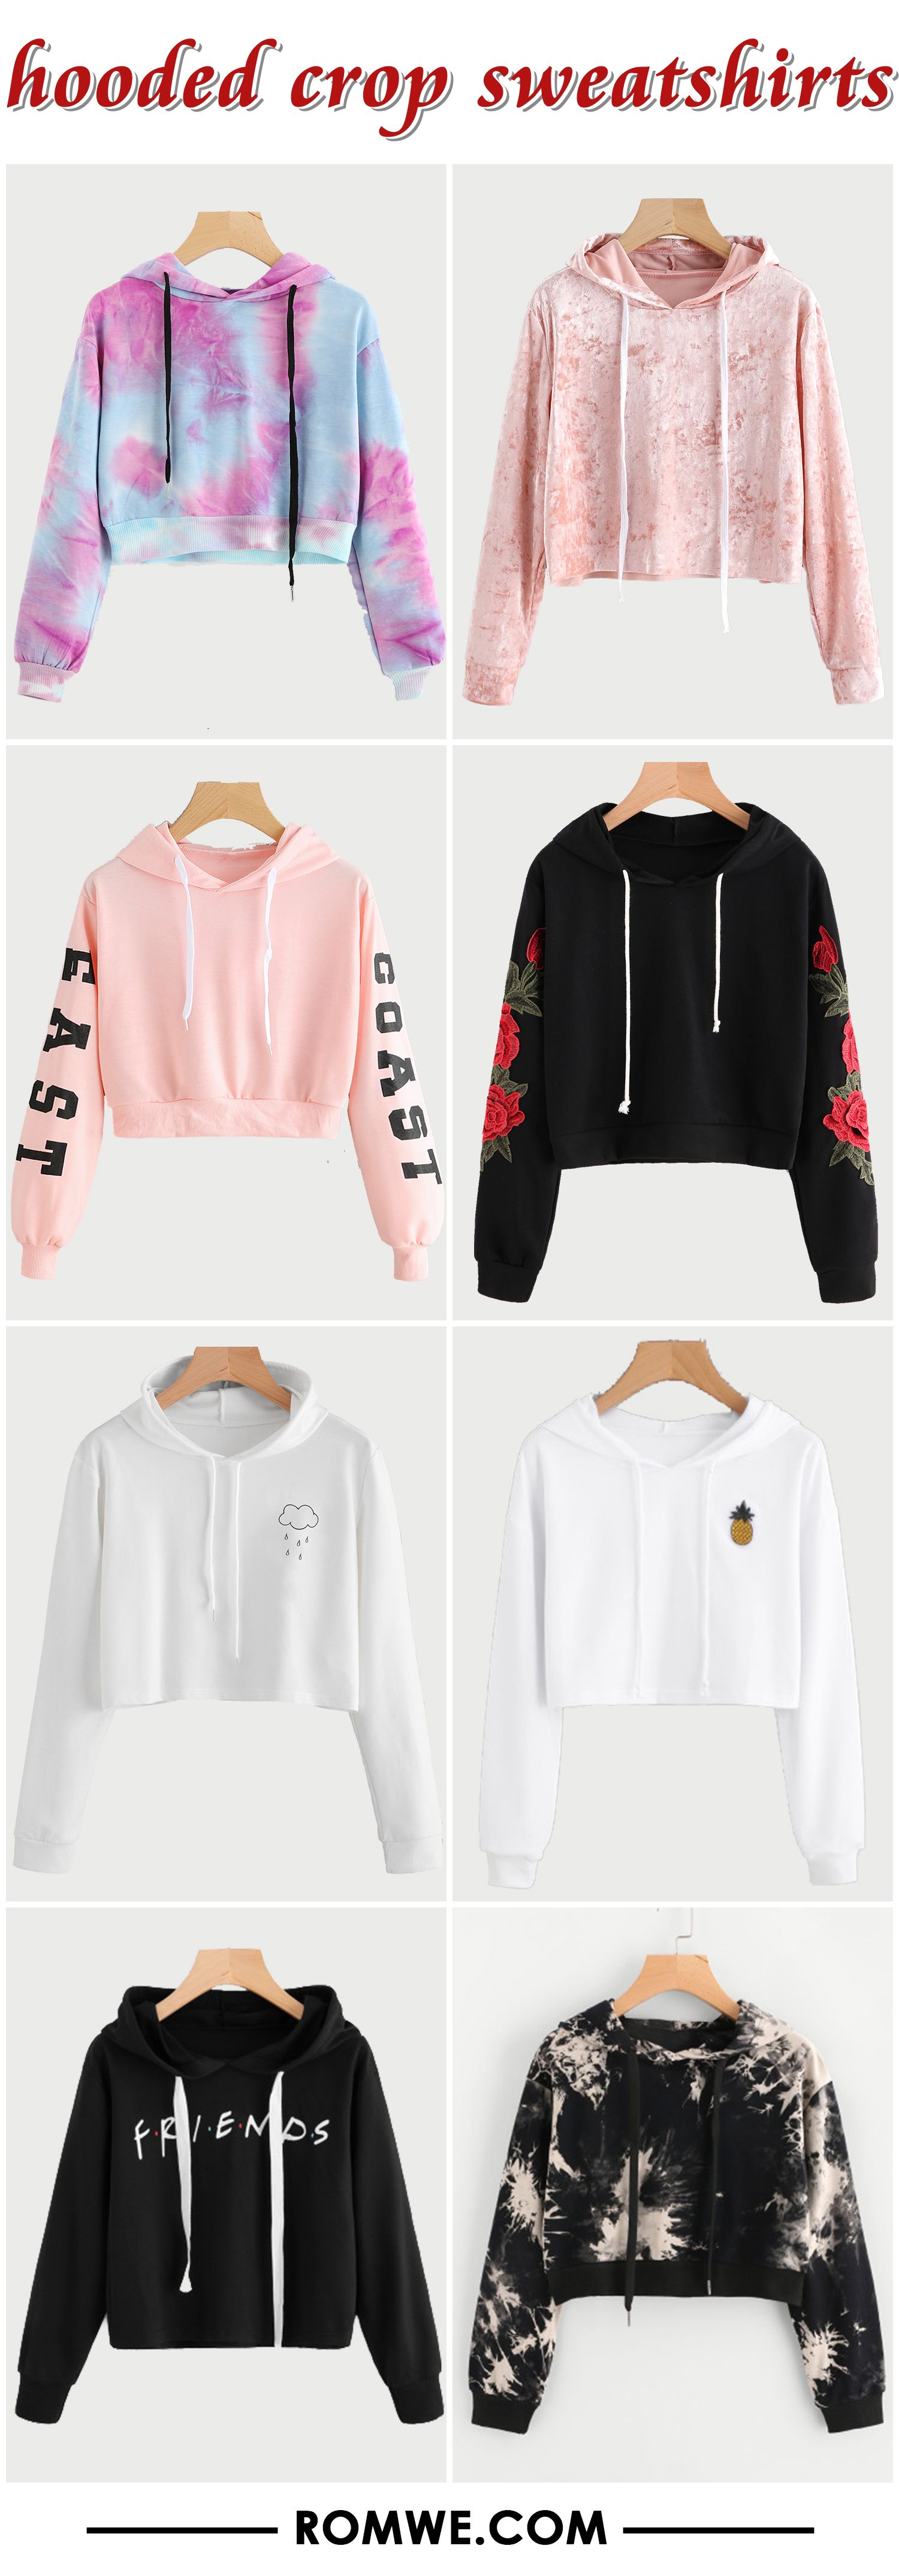 547121454539 hooded crop sweatshirts 2017 - romwe.com